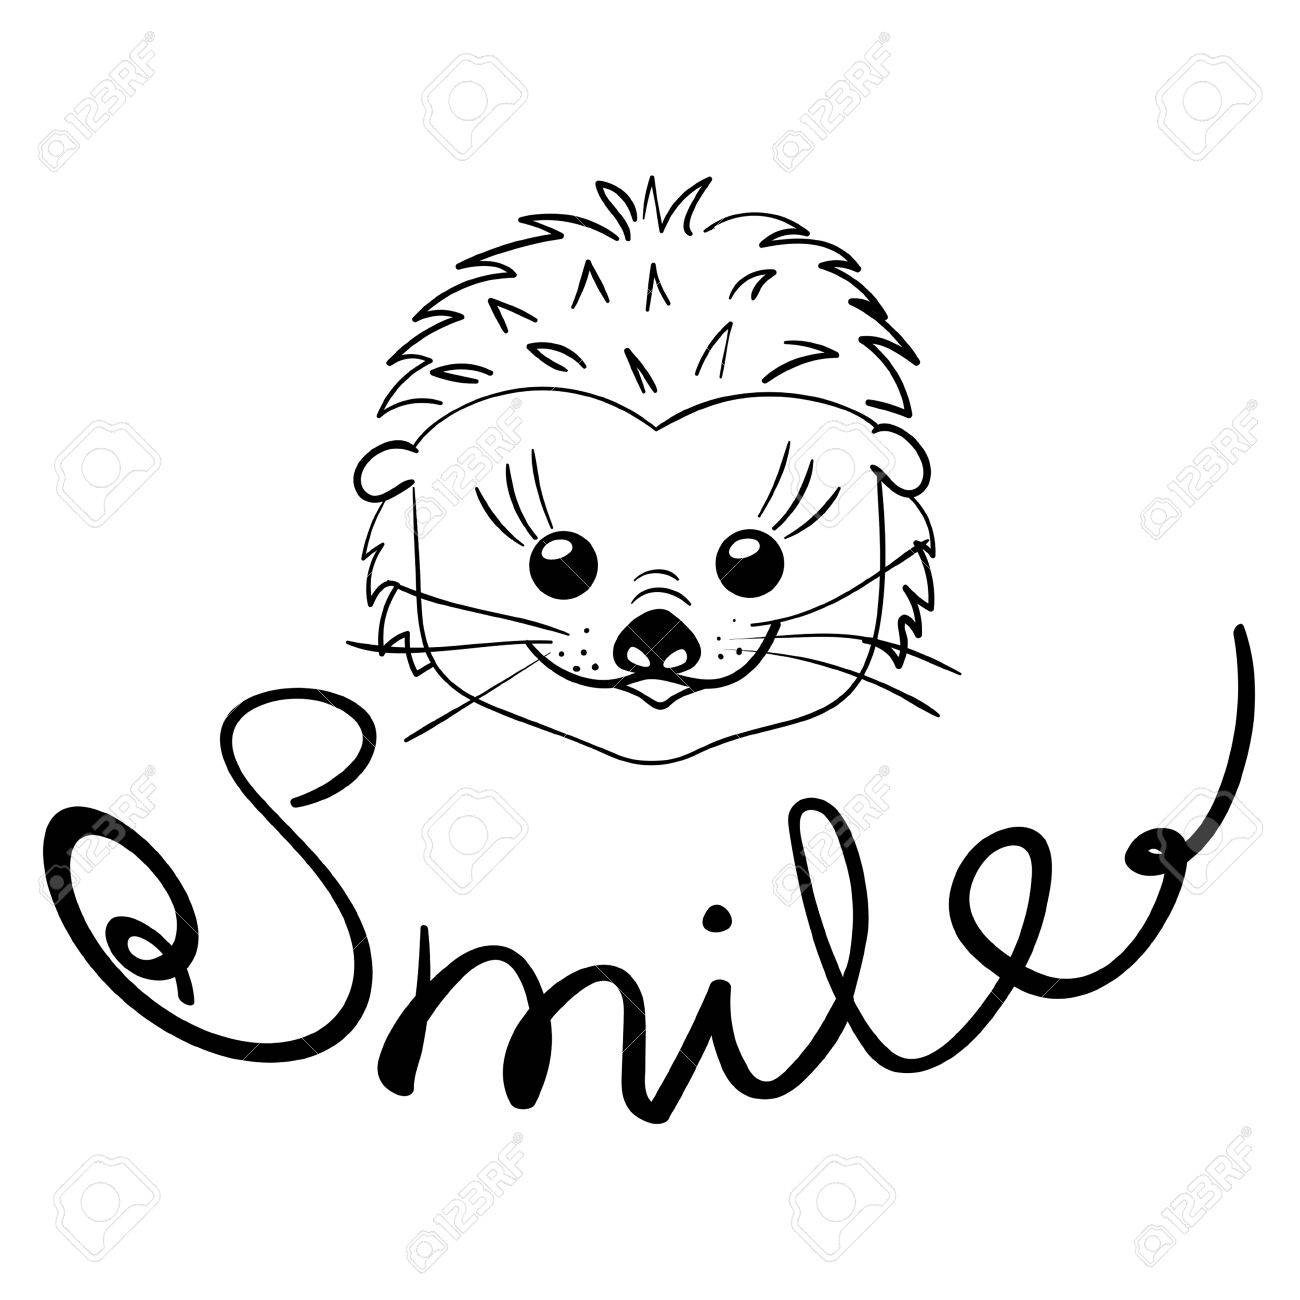 1300x1300 Smile. Inspirational Quote. Cute Smiling Hedgehog. Vector